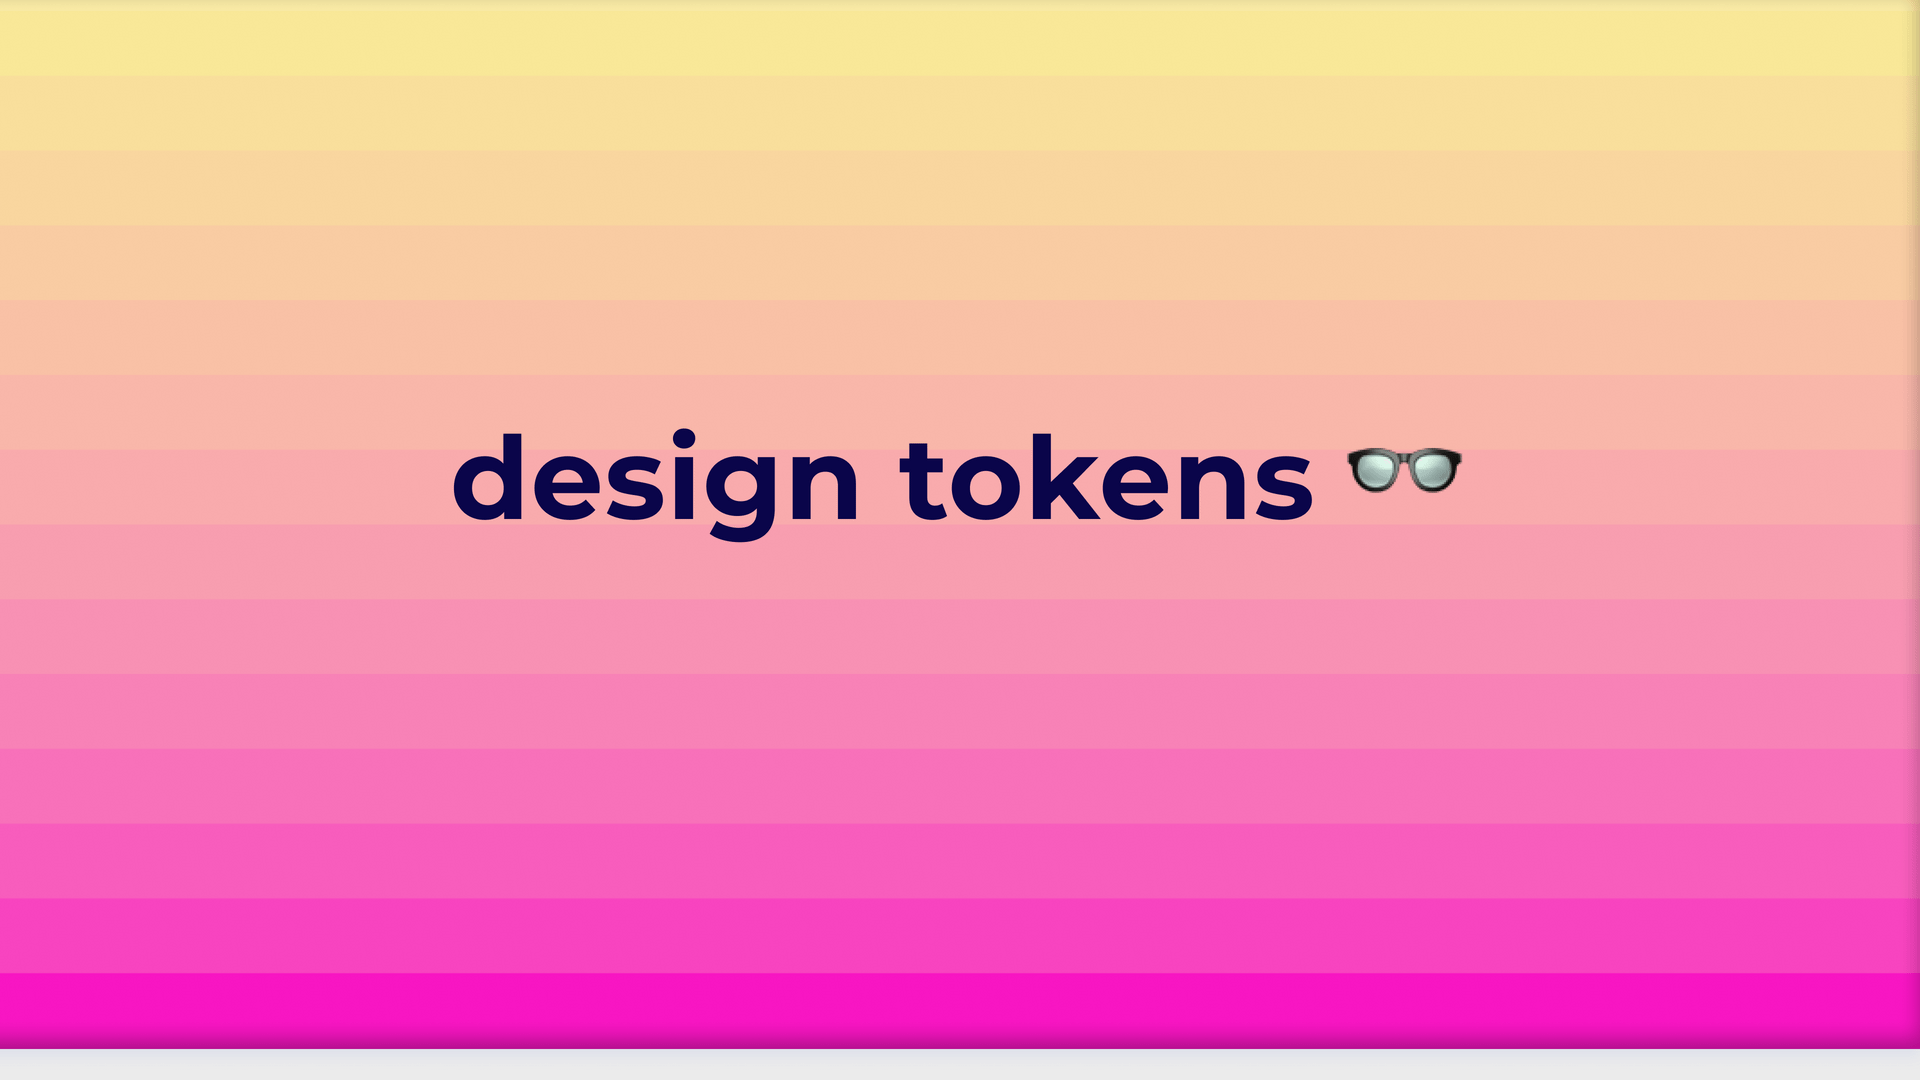 Design tokens are designer shortcuts